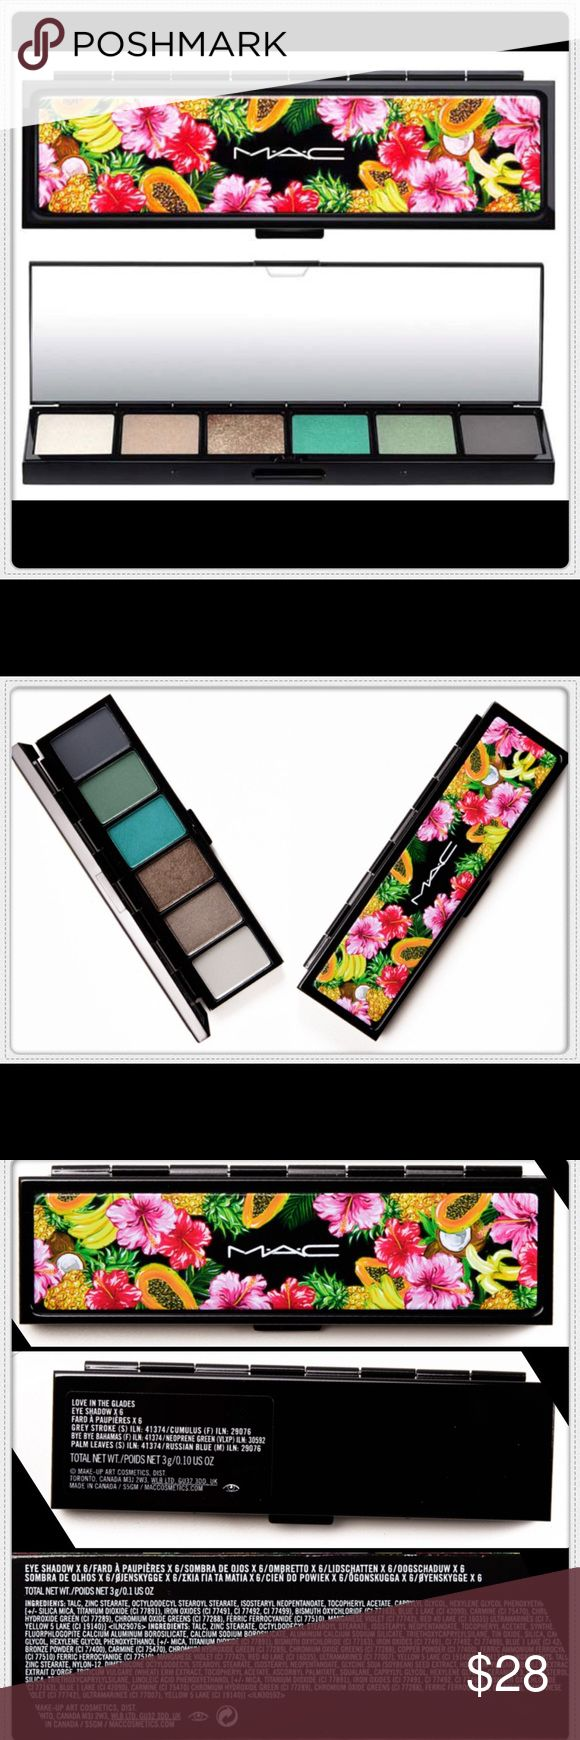 """💙MAC EYE SHADOW X6 PALLET ▪️MAC• """"LOVE IN THE GLADES"""" EYE SHADOW X6 •COLORS-Grey Stroke/Bye Bye Bahamas/Palm Leaves/Russian Blue/Cumulus/Neoprene Green  •SIZE-3g/0.10oz ▪️ALL ITEMS IN MY CLOSET ARE 100% AUTHENTIC ▪️THIS A NON TRADING CLOSET  •POSHMARK COMPLIANT•ALL SALES ARE FINAL ▪️ALL ITEMS IN MY CLOSET ARE THOROUGHLY INSPECTED ▪️BRAND NEW WITH ALL ORIGINAL TAGS ATTACHED • NO FLAWS •PERFECT CONDITION  •PRICE IS FIRM •OFFERS WILL NOT BE ENTERTAINED ~Starr💫 MAC Cosmetics Makeup Eyeshadow"""